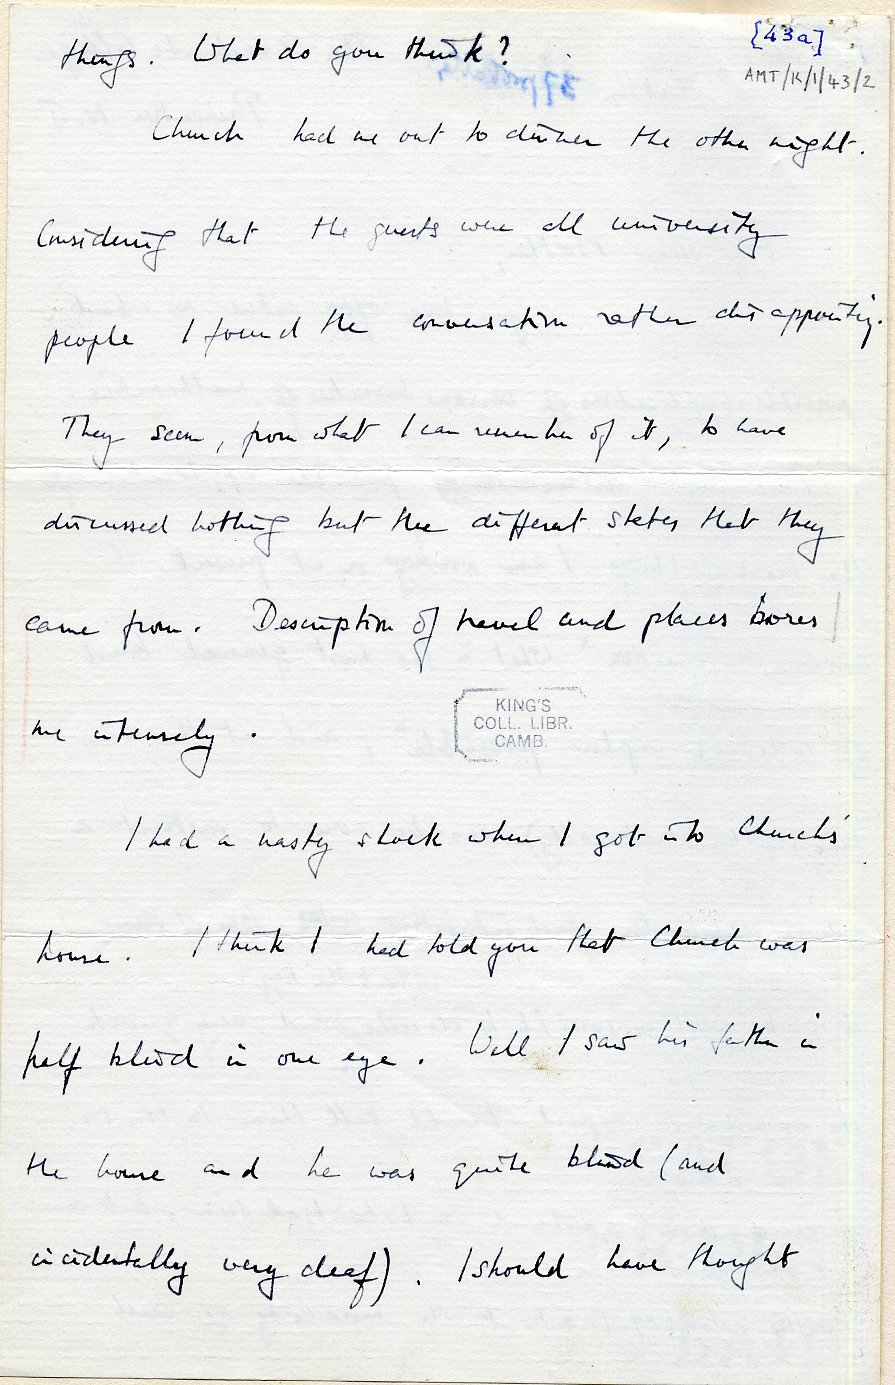 Second page of a letter to his mother dated 14 October 1936. [AMT K/1/43]